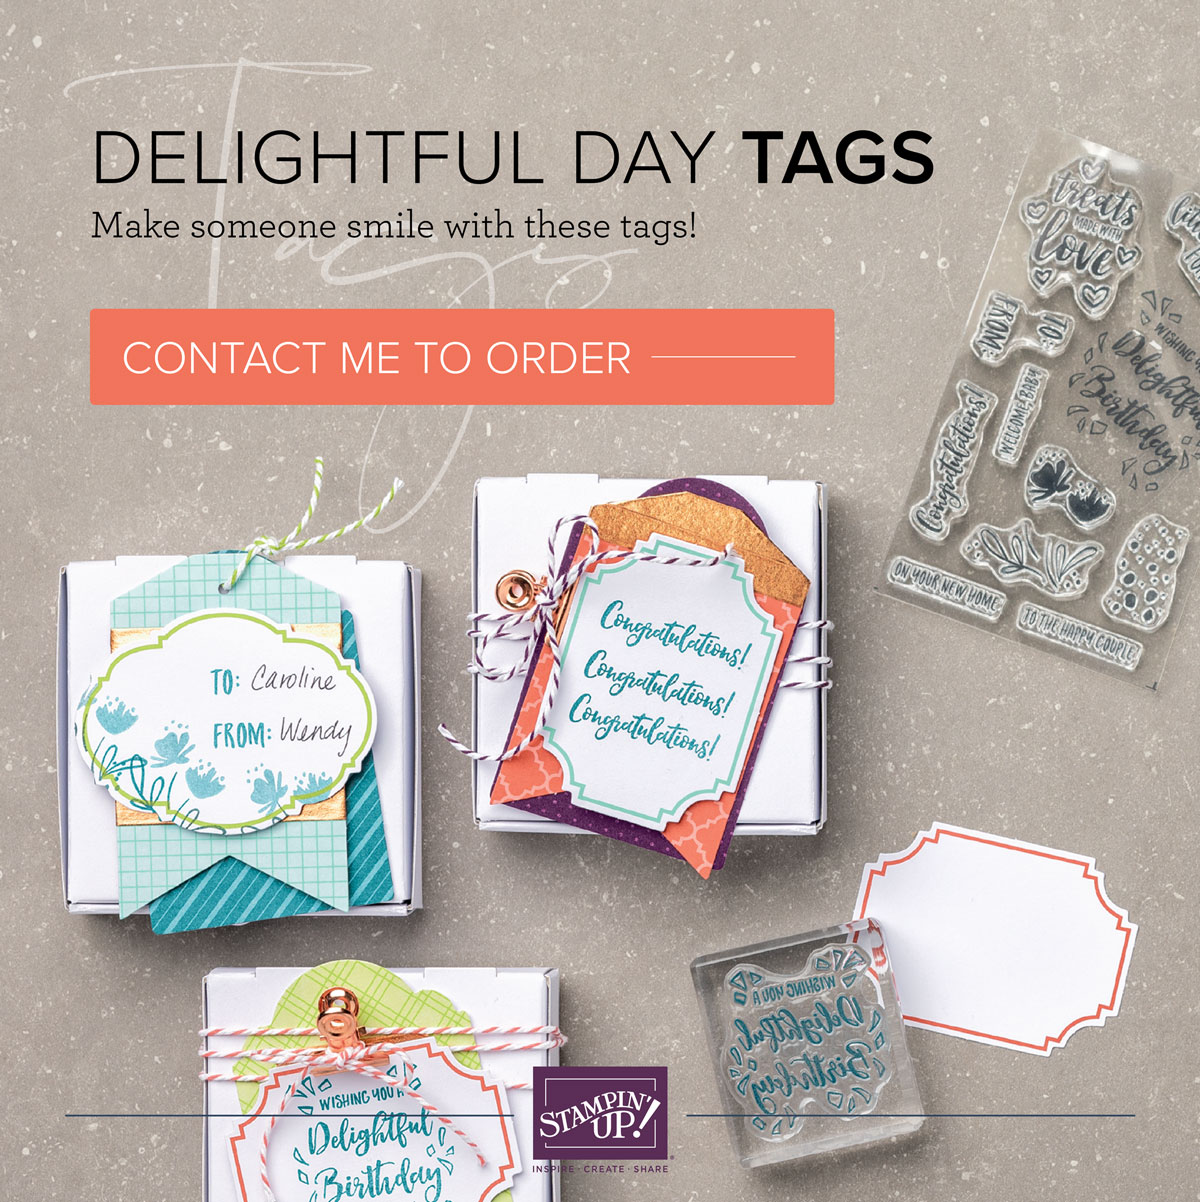 DELIGHTFUL DAY TAGS KIT